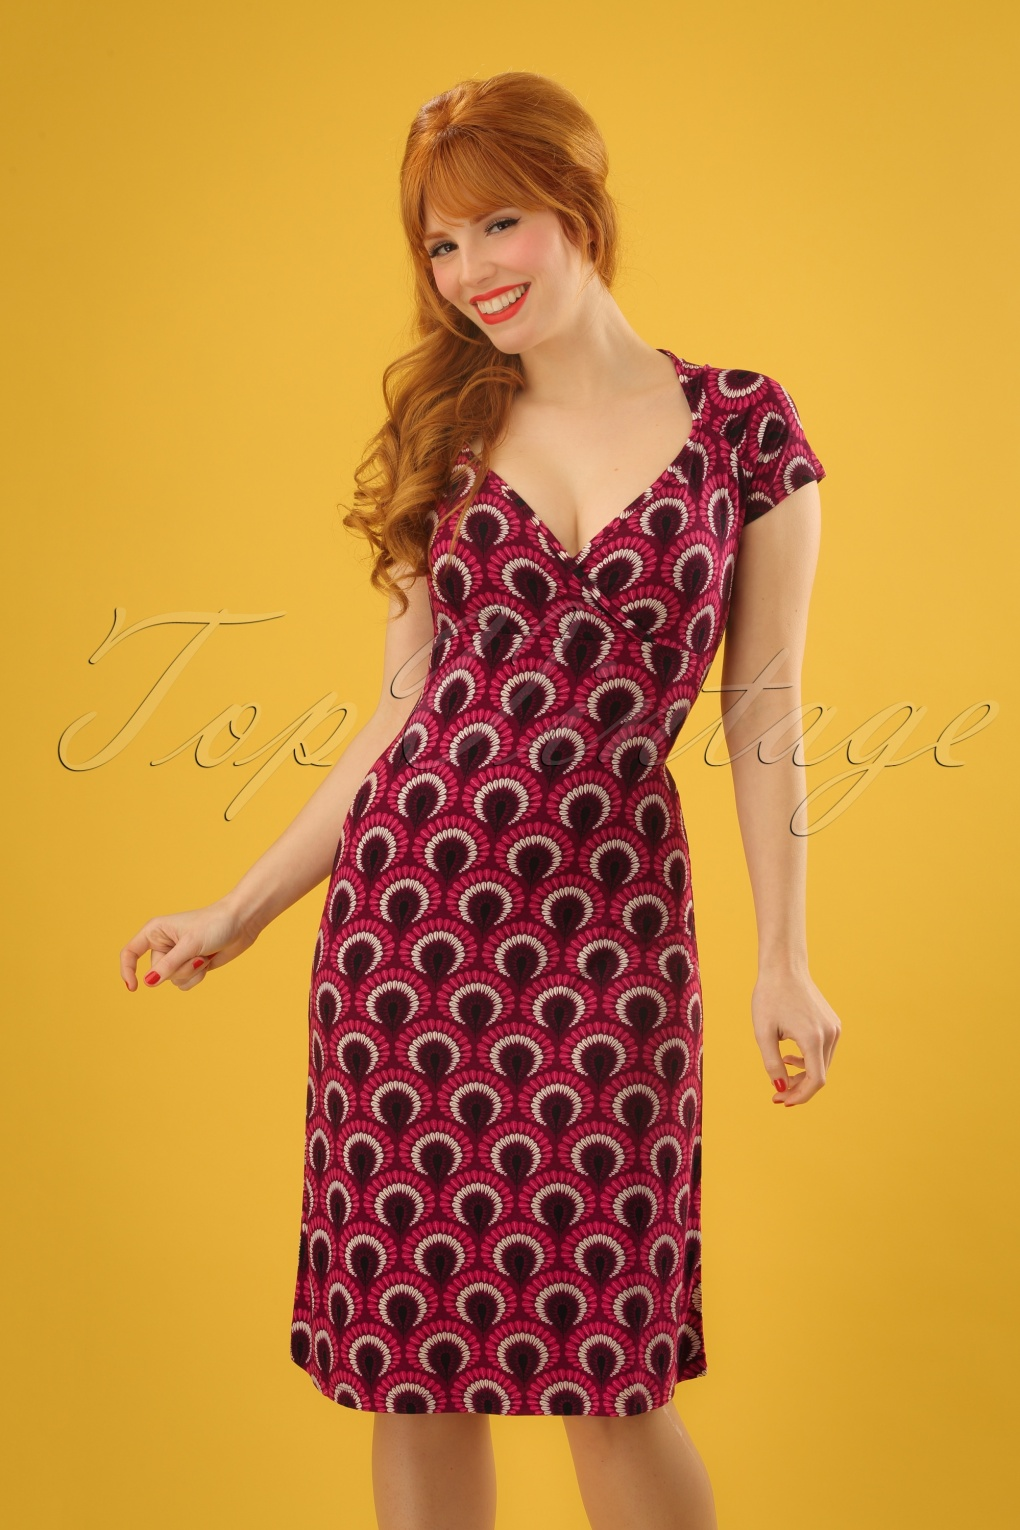 Plus Size Vintage Dresses, Plus Size Retro Dresses 60s Gina Peacock Dress in Beaujolais Red £83.18 AT vintagedancer.com